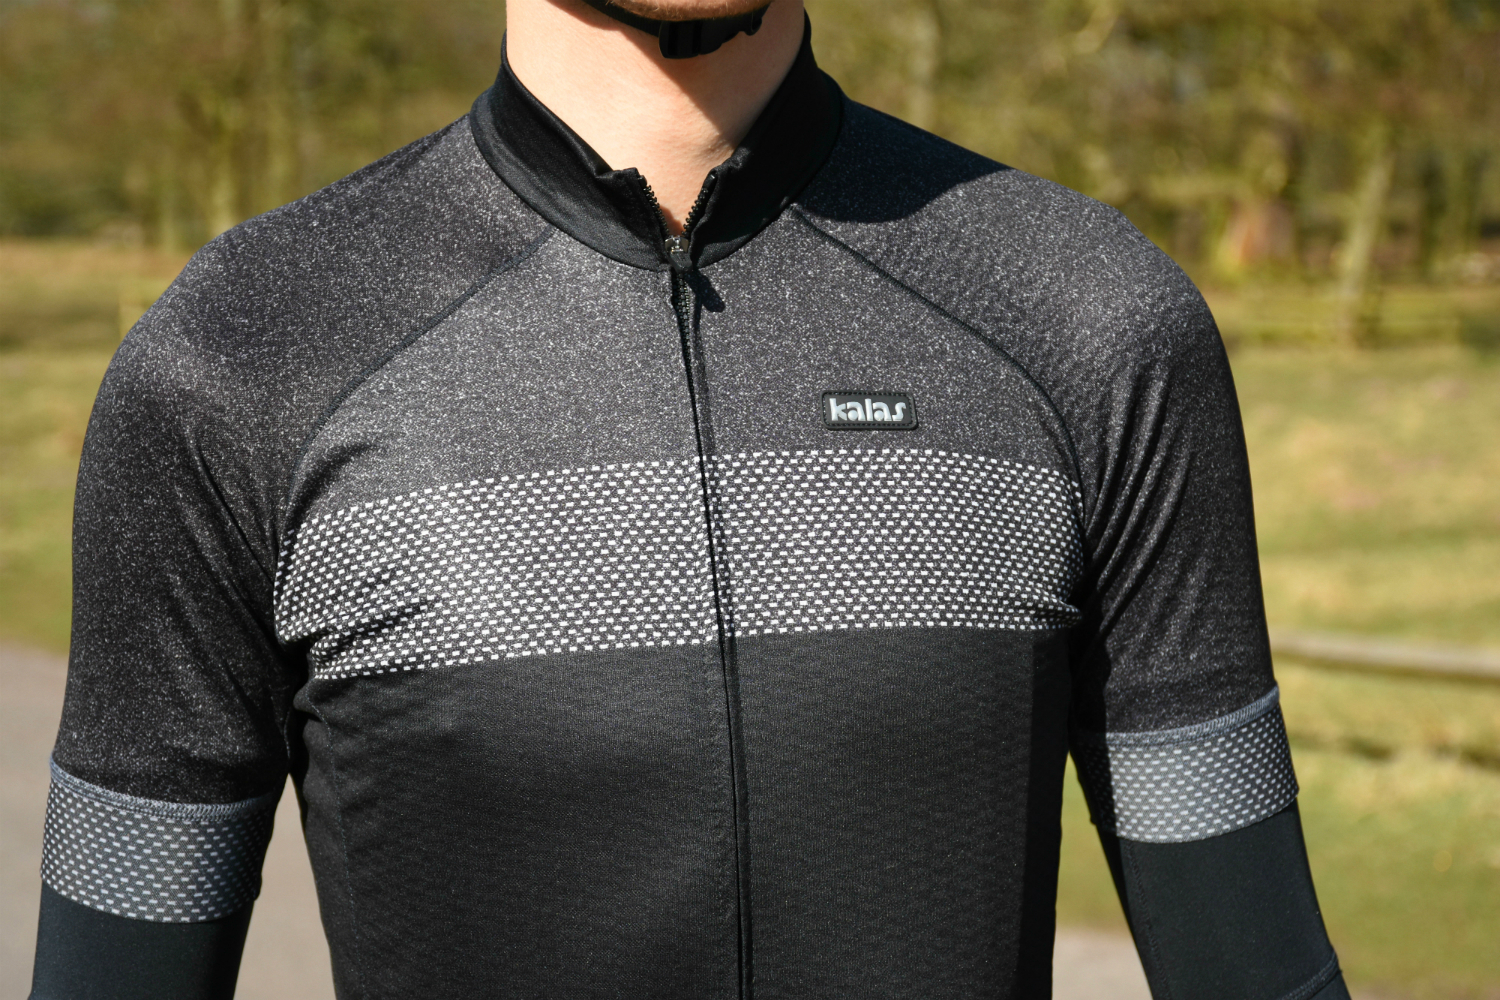 A cyclist in Kalas Passion jersey.